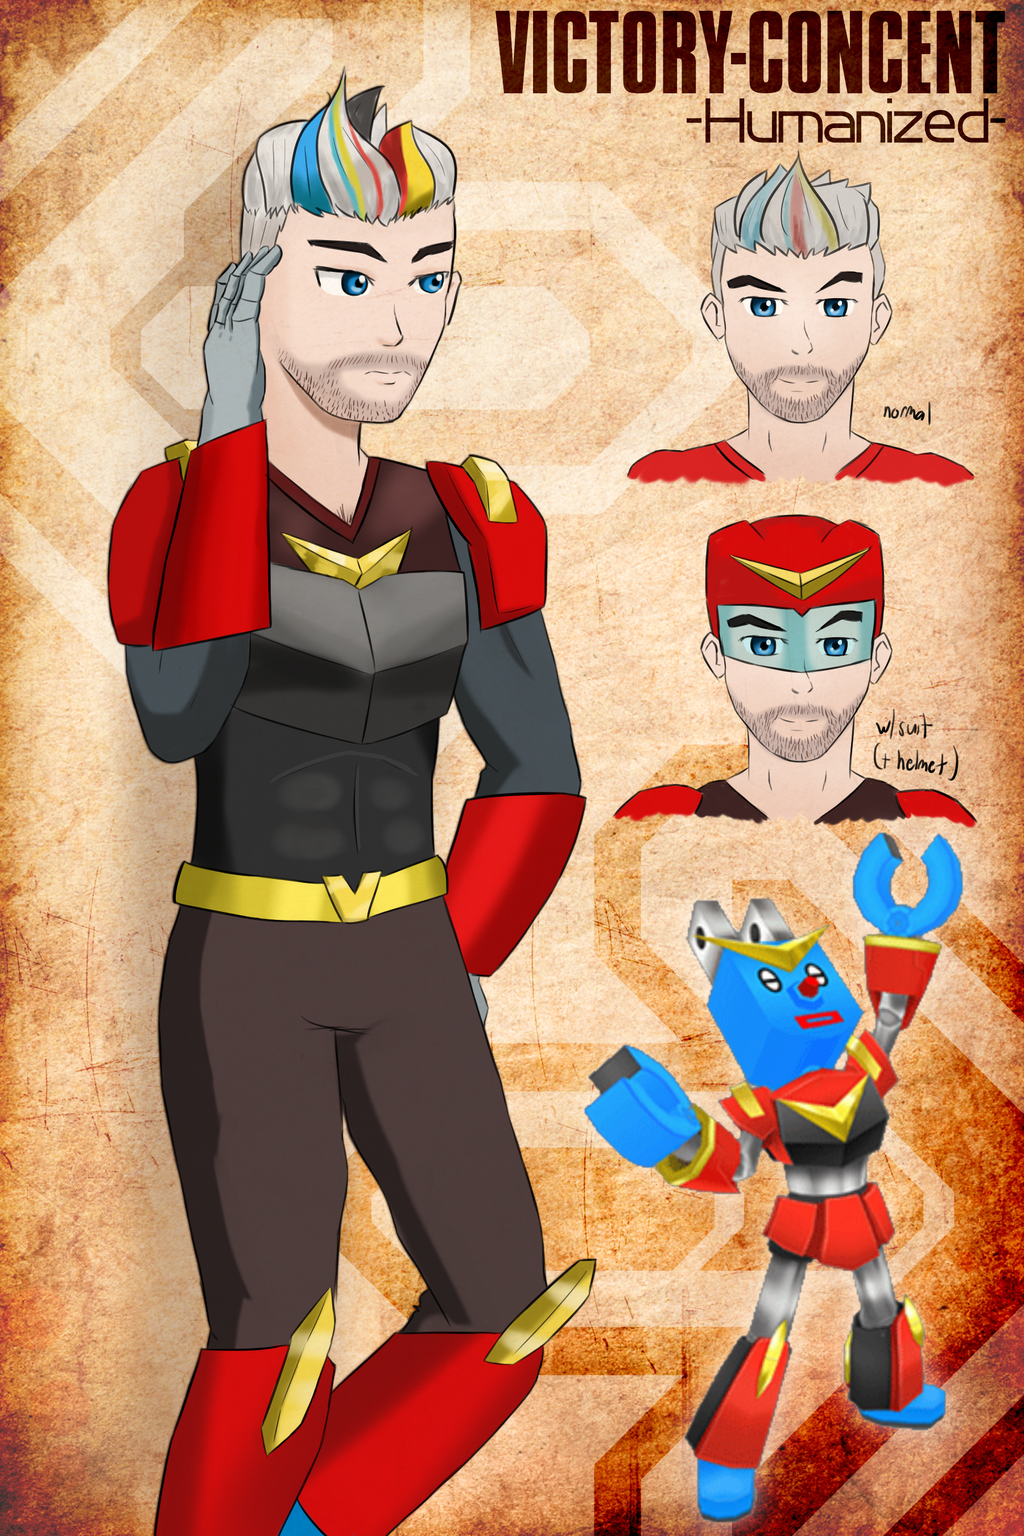 http://img13.deviantart.net/93e9/i/2016/227/c/5/ddr___victory_concent_humanized_by_coddry-dae2wfk.png